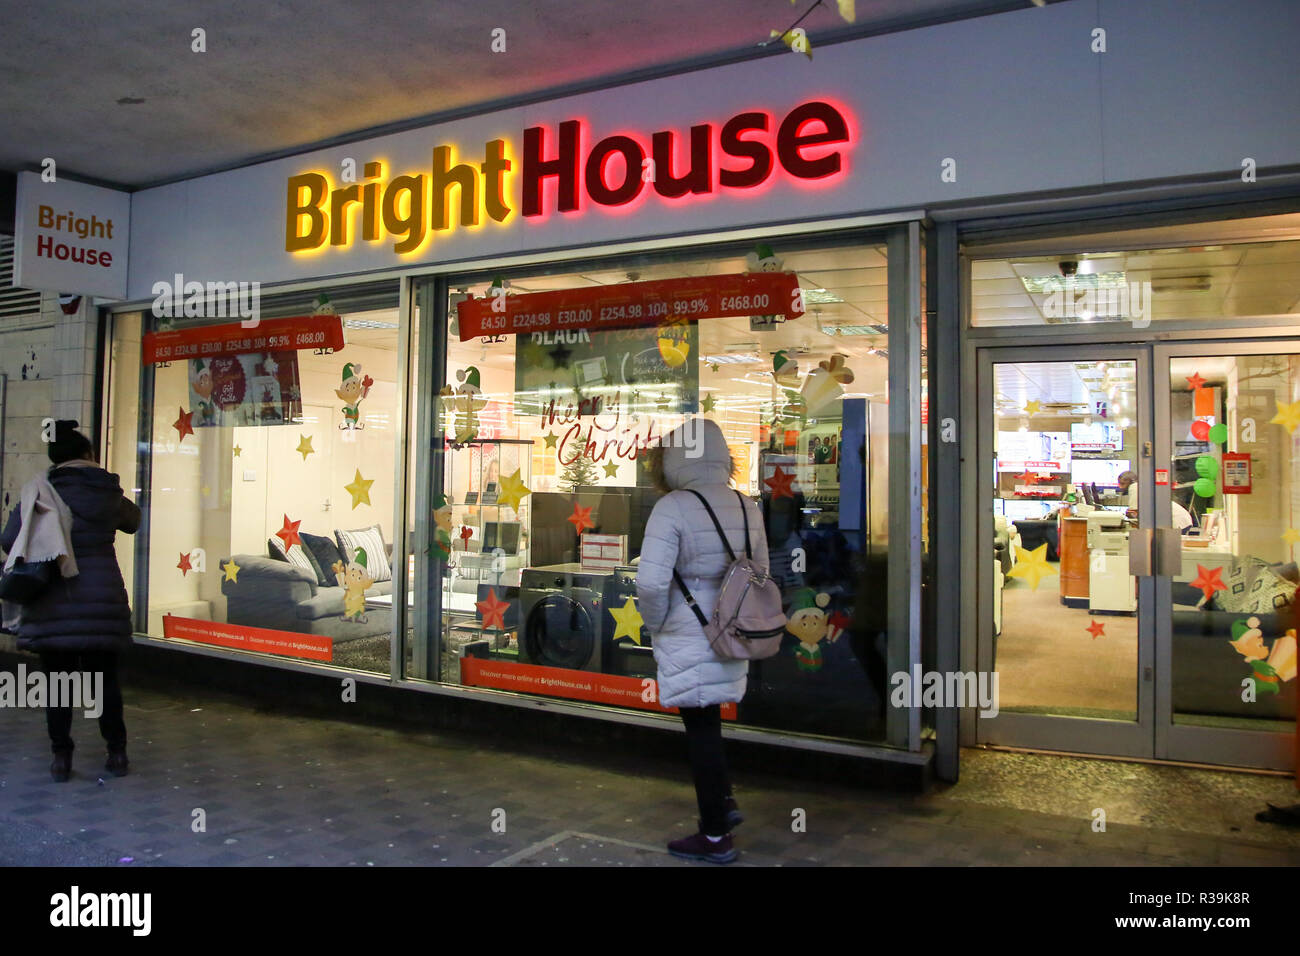 London, UK. 22nd Nov, 2018. New price cap on rent-to-own firms like Bright House that leave thousands in debt.The Financial Conduct Authority (FCA) has proposed to introduce a price cap on the rent-to-own (RTO) sector as part of efforts to protect some of Britain's most vulnerable households. The cap, subject to consultation, will come into force on 1 April 2019 and provide protection for customers, many of whom aren't earning enough to repay the contracts they're placed on. Credit: Dinendra Haria/SOPA Images/ZUMA Wire/Alamy Live News Stock Photo